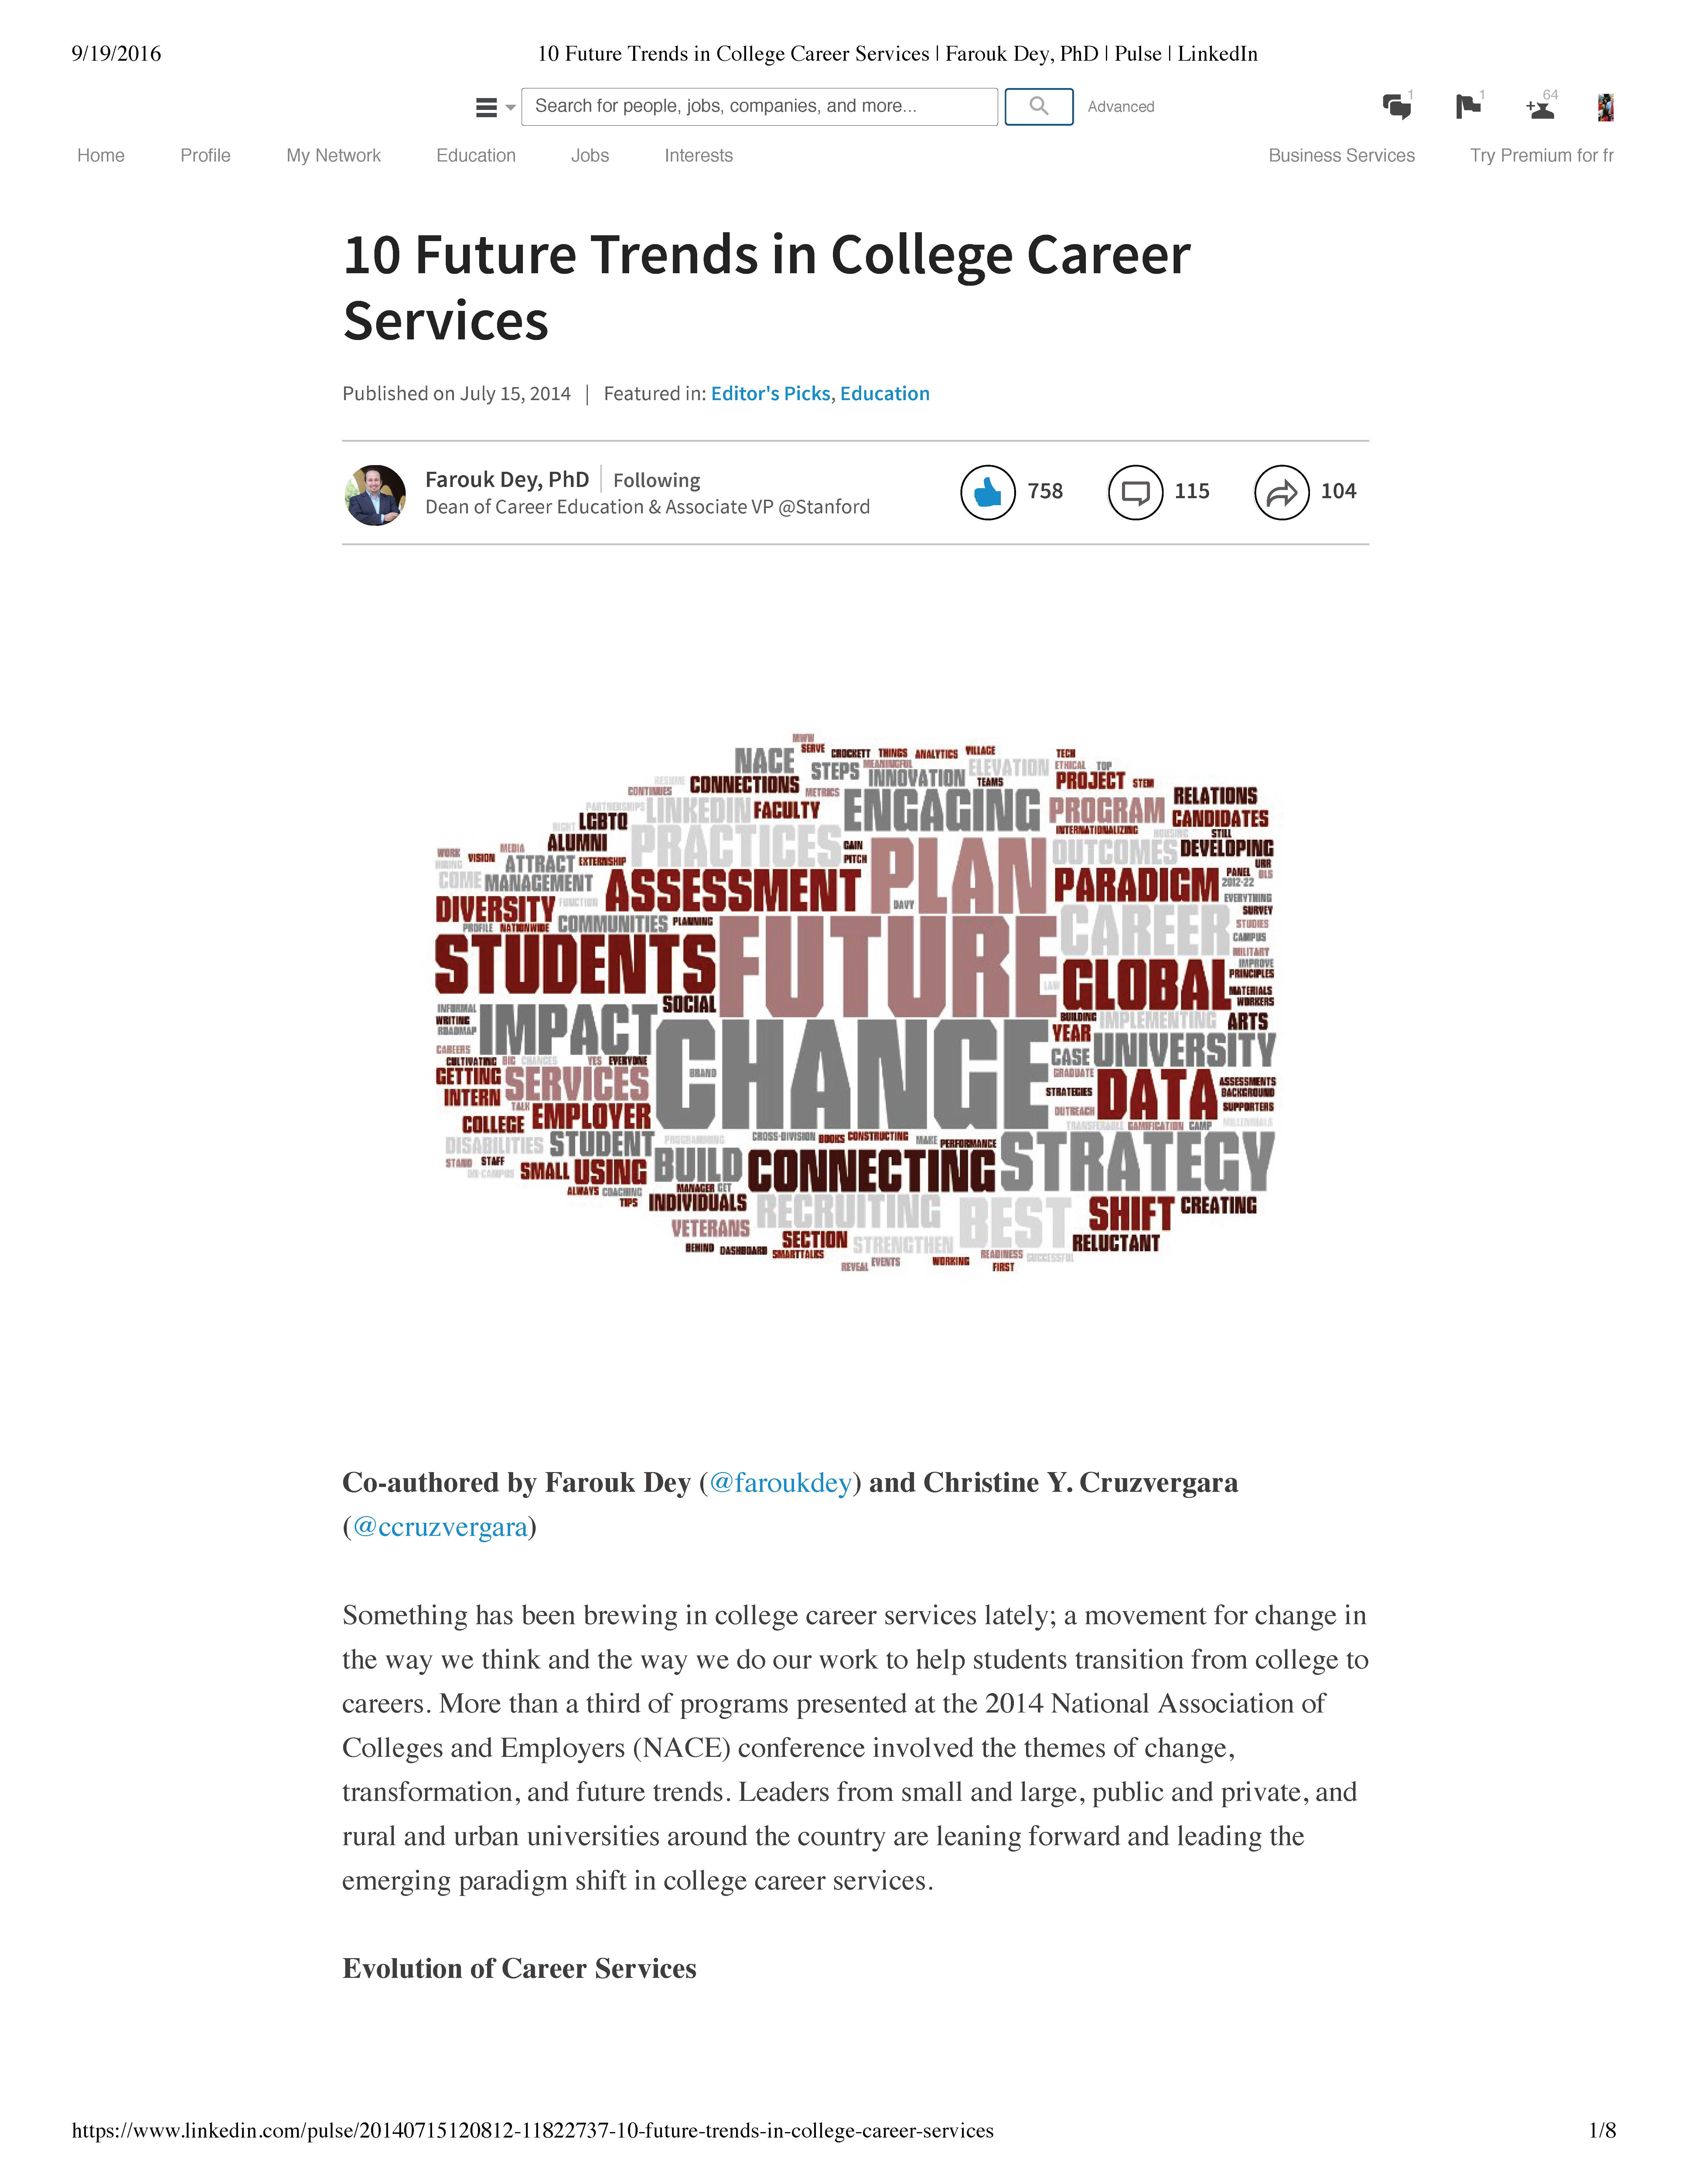 10-future-trends-in-college-career-services-_-farouk-dey-phd-_-pulse-_-linkedin_page_1